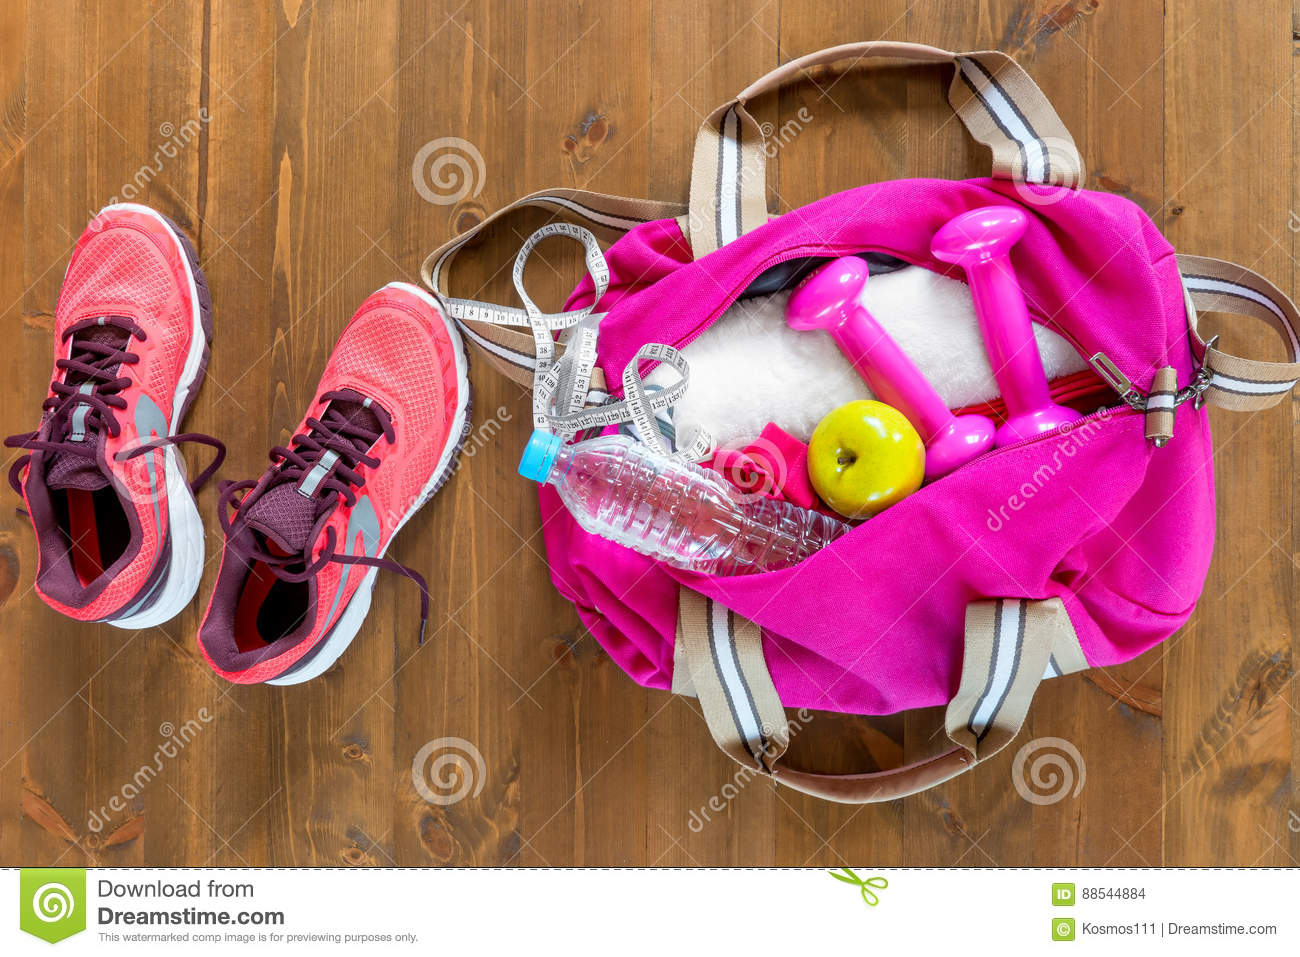 6bf177573a Open Sports Bag And Pink Running Shoes On A Wooden Floor Stock Photo ...